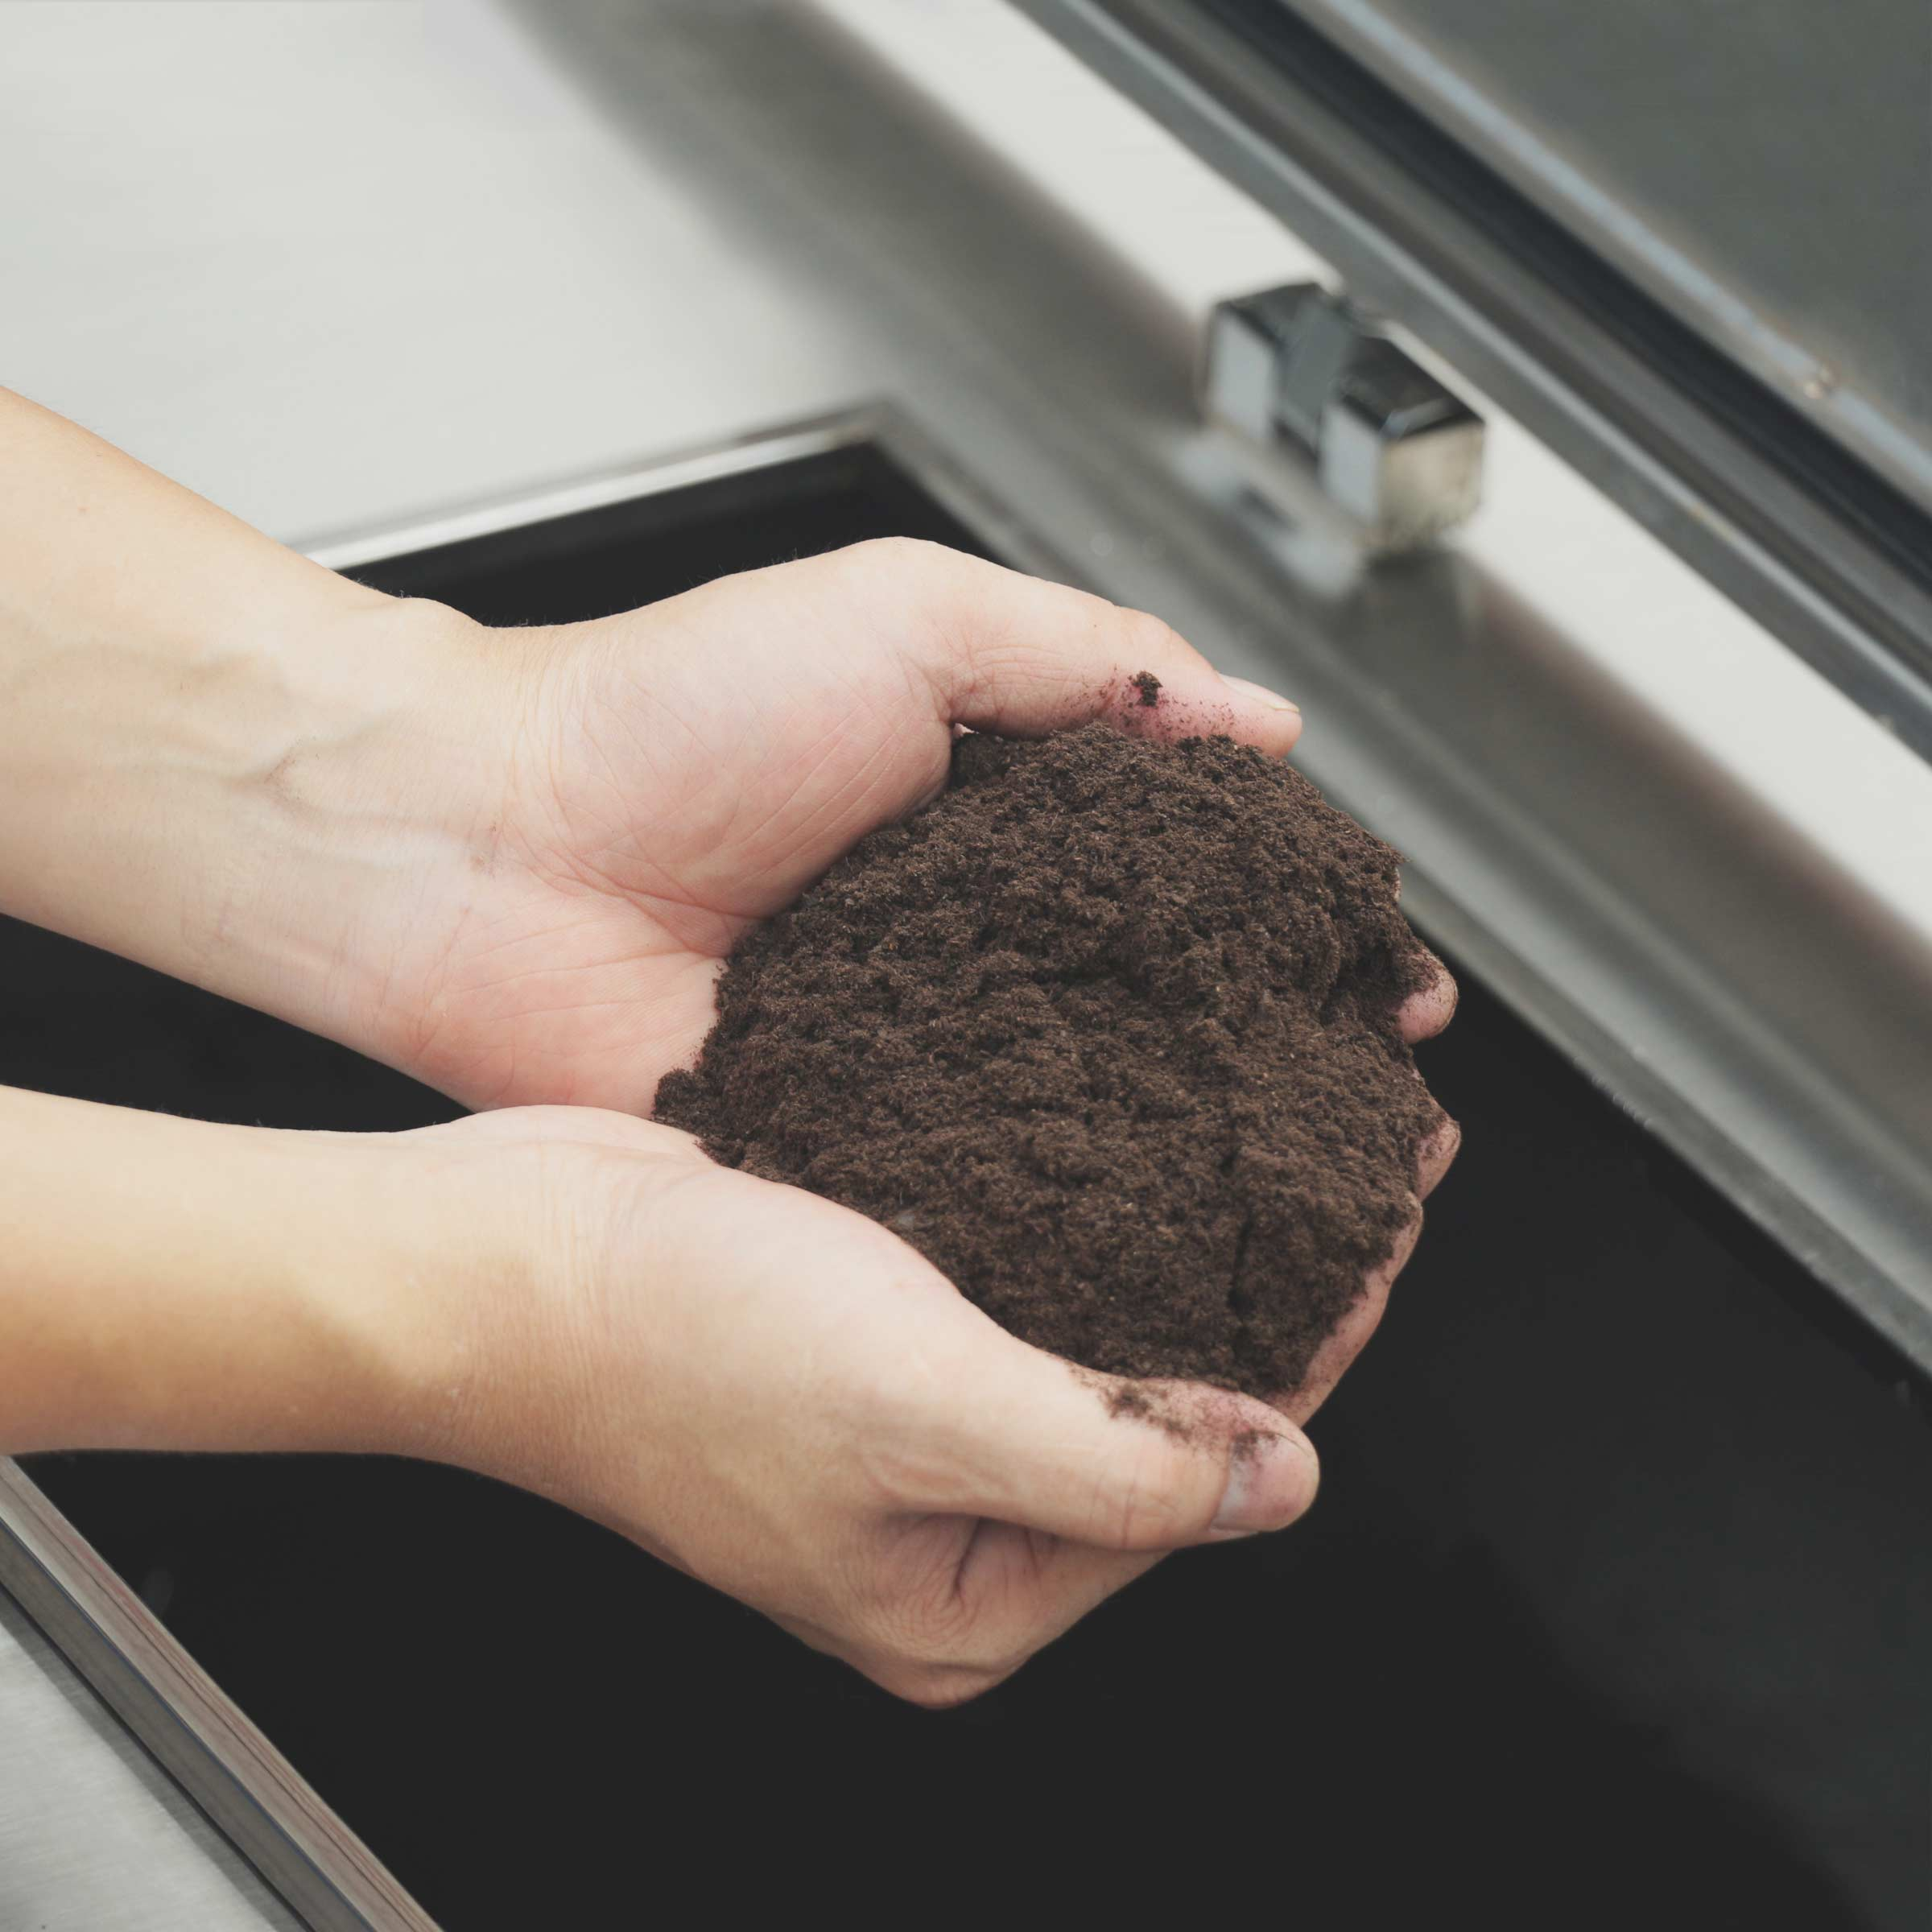 organic waste composter machine for home kitchens | by Oklin